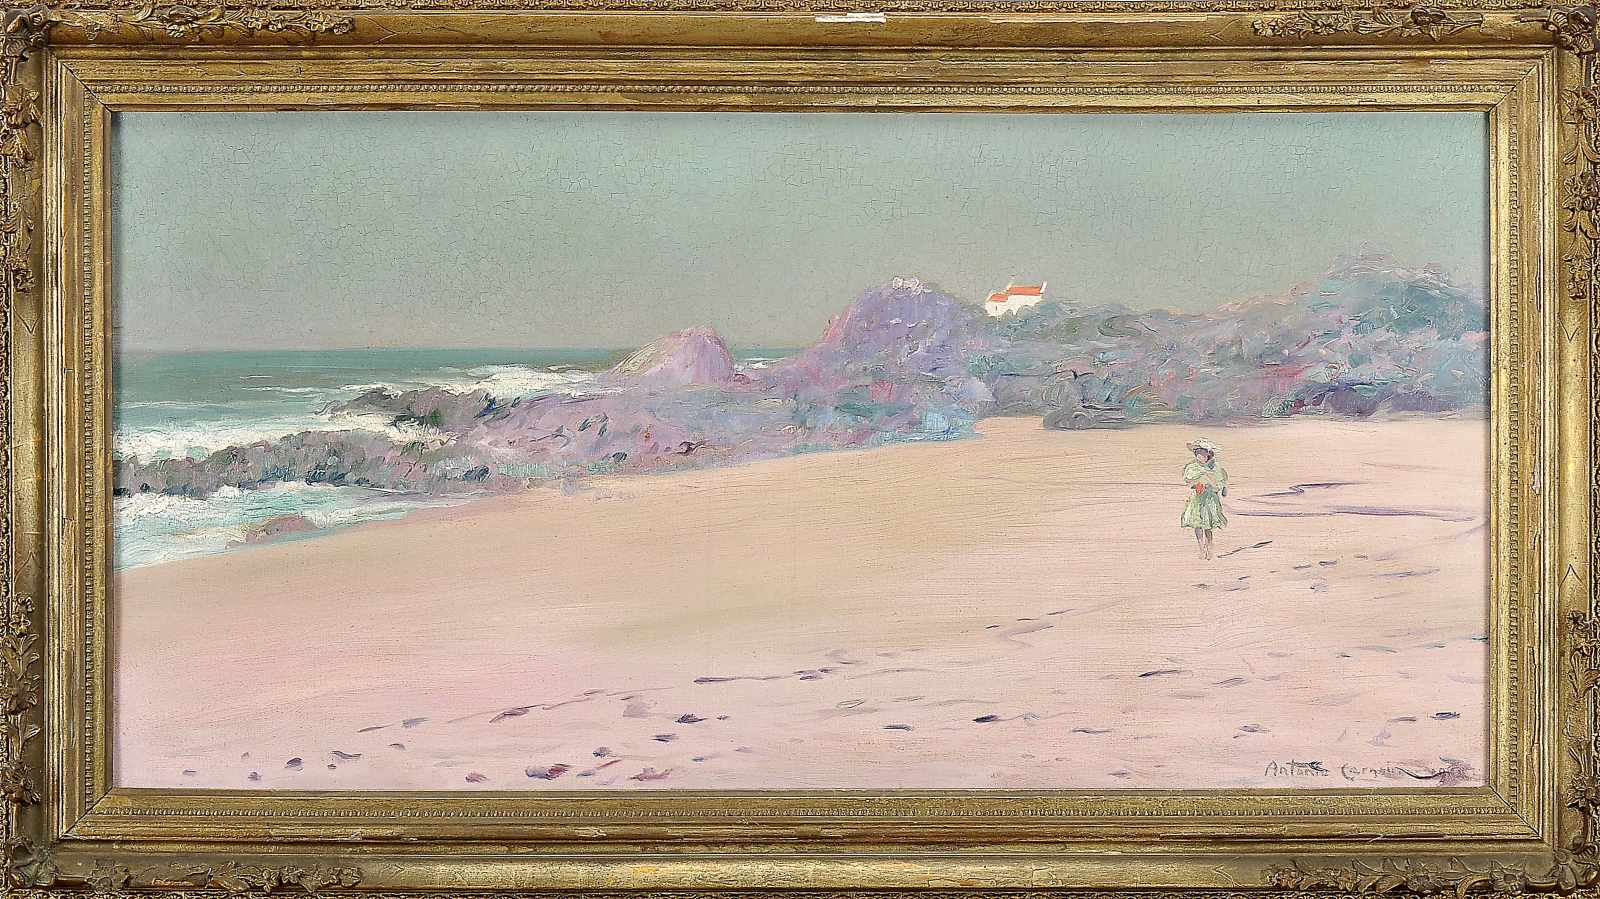 Beach view with figure